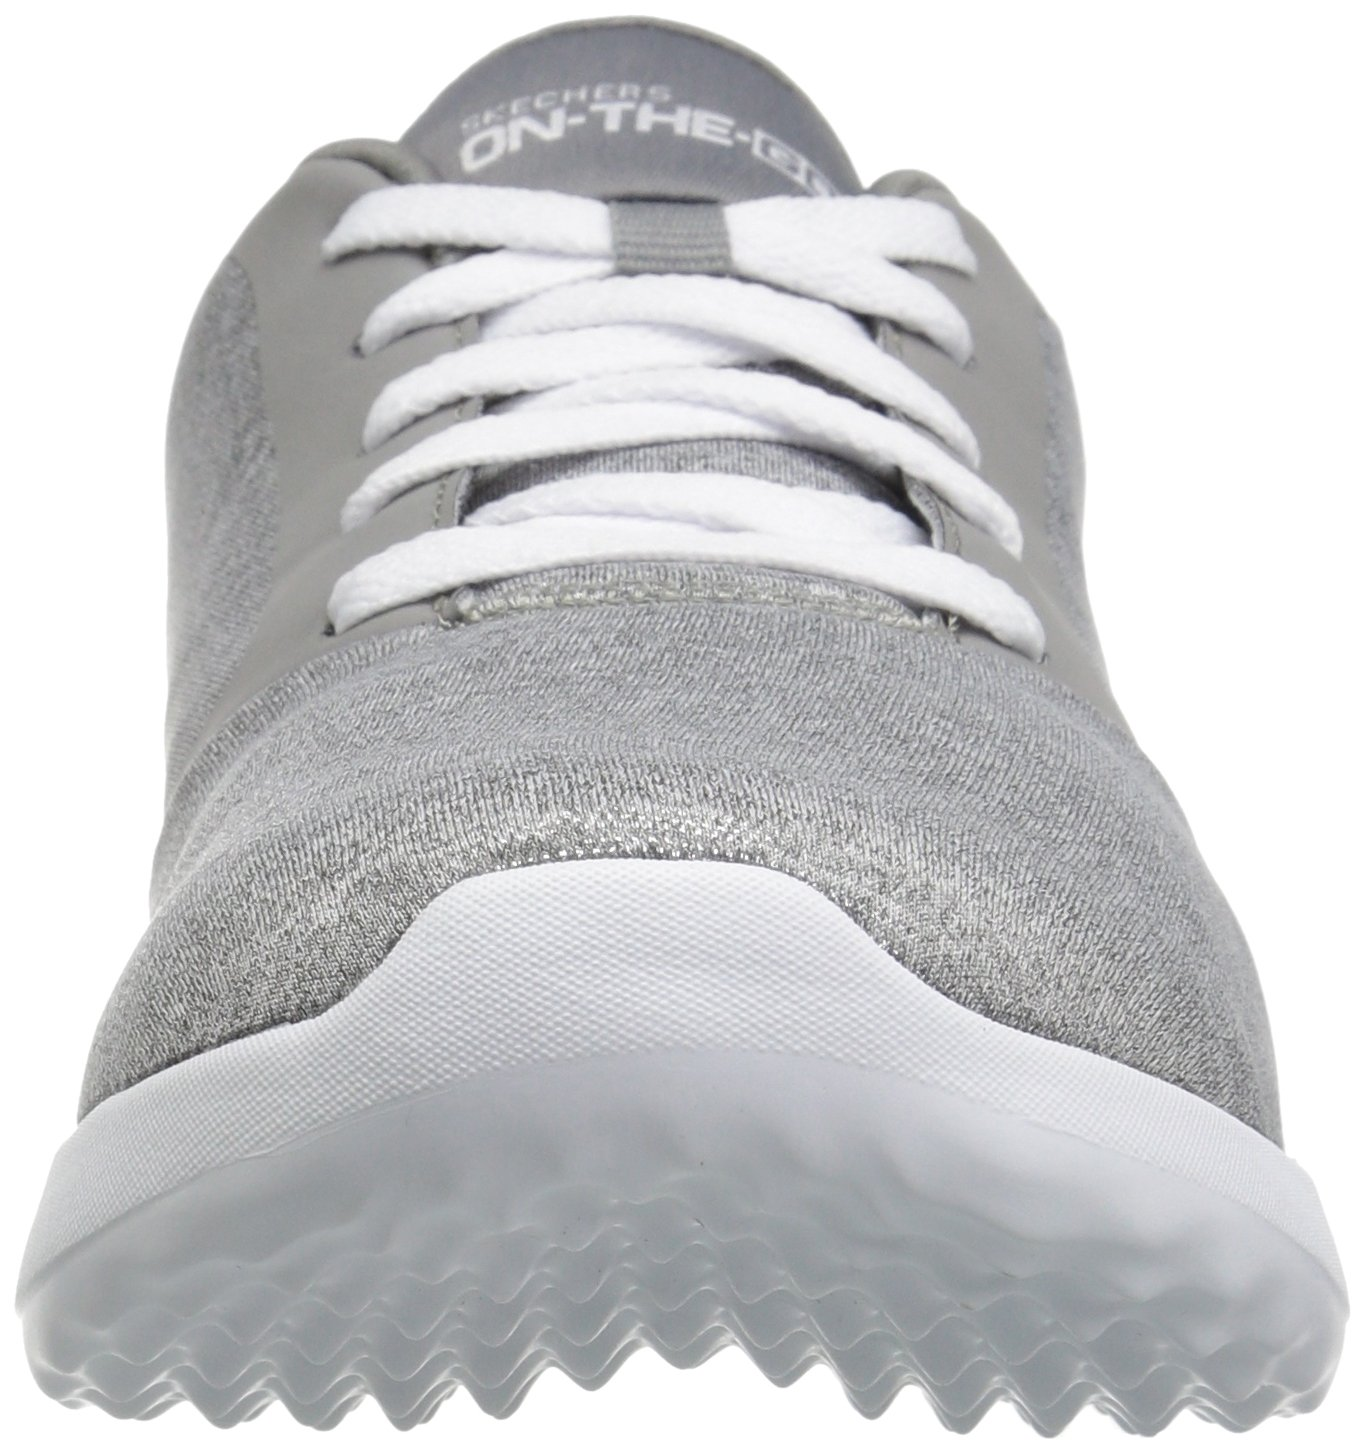 Skechers Performance B01N9RQWPP Women's On The Go City 3 Renovated B01N9RQWPP Performance 7 W US|Gray e19b8a